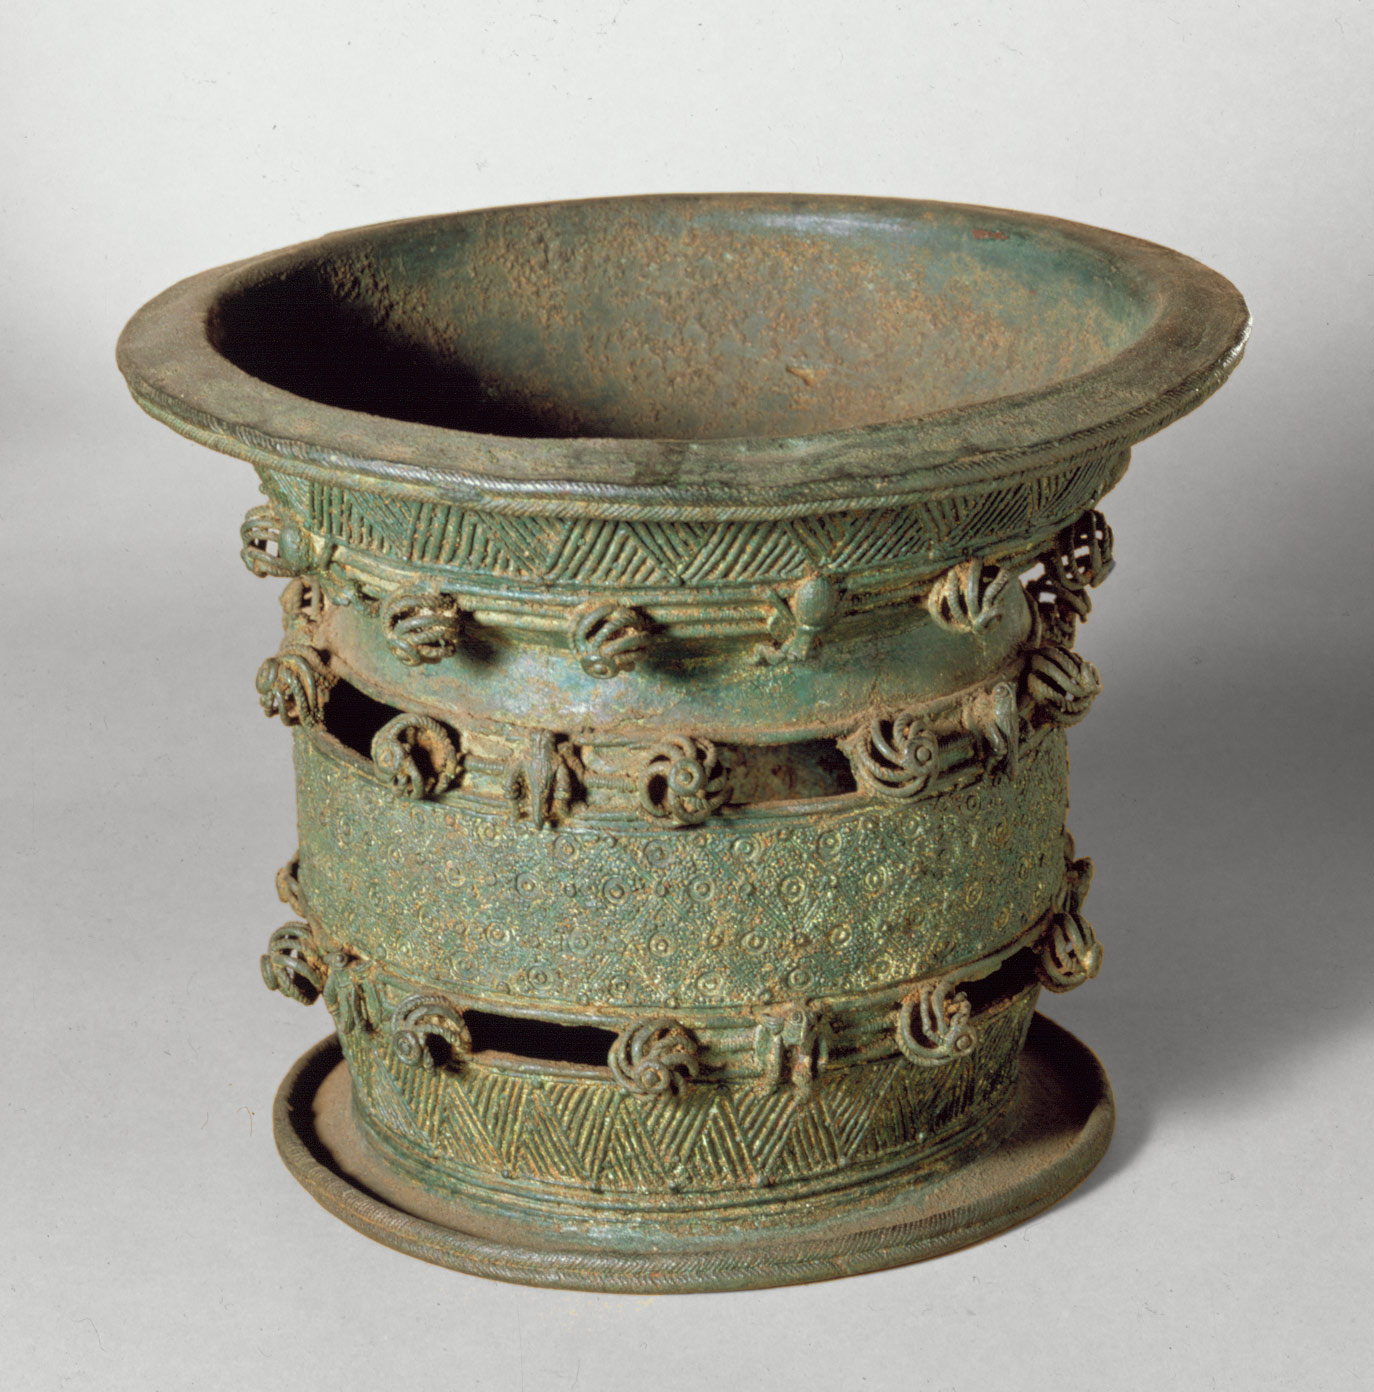 Bowl on a Stand: 9th-10th century